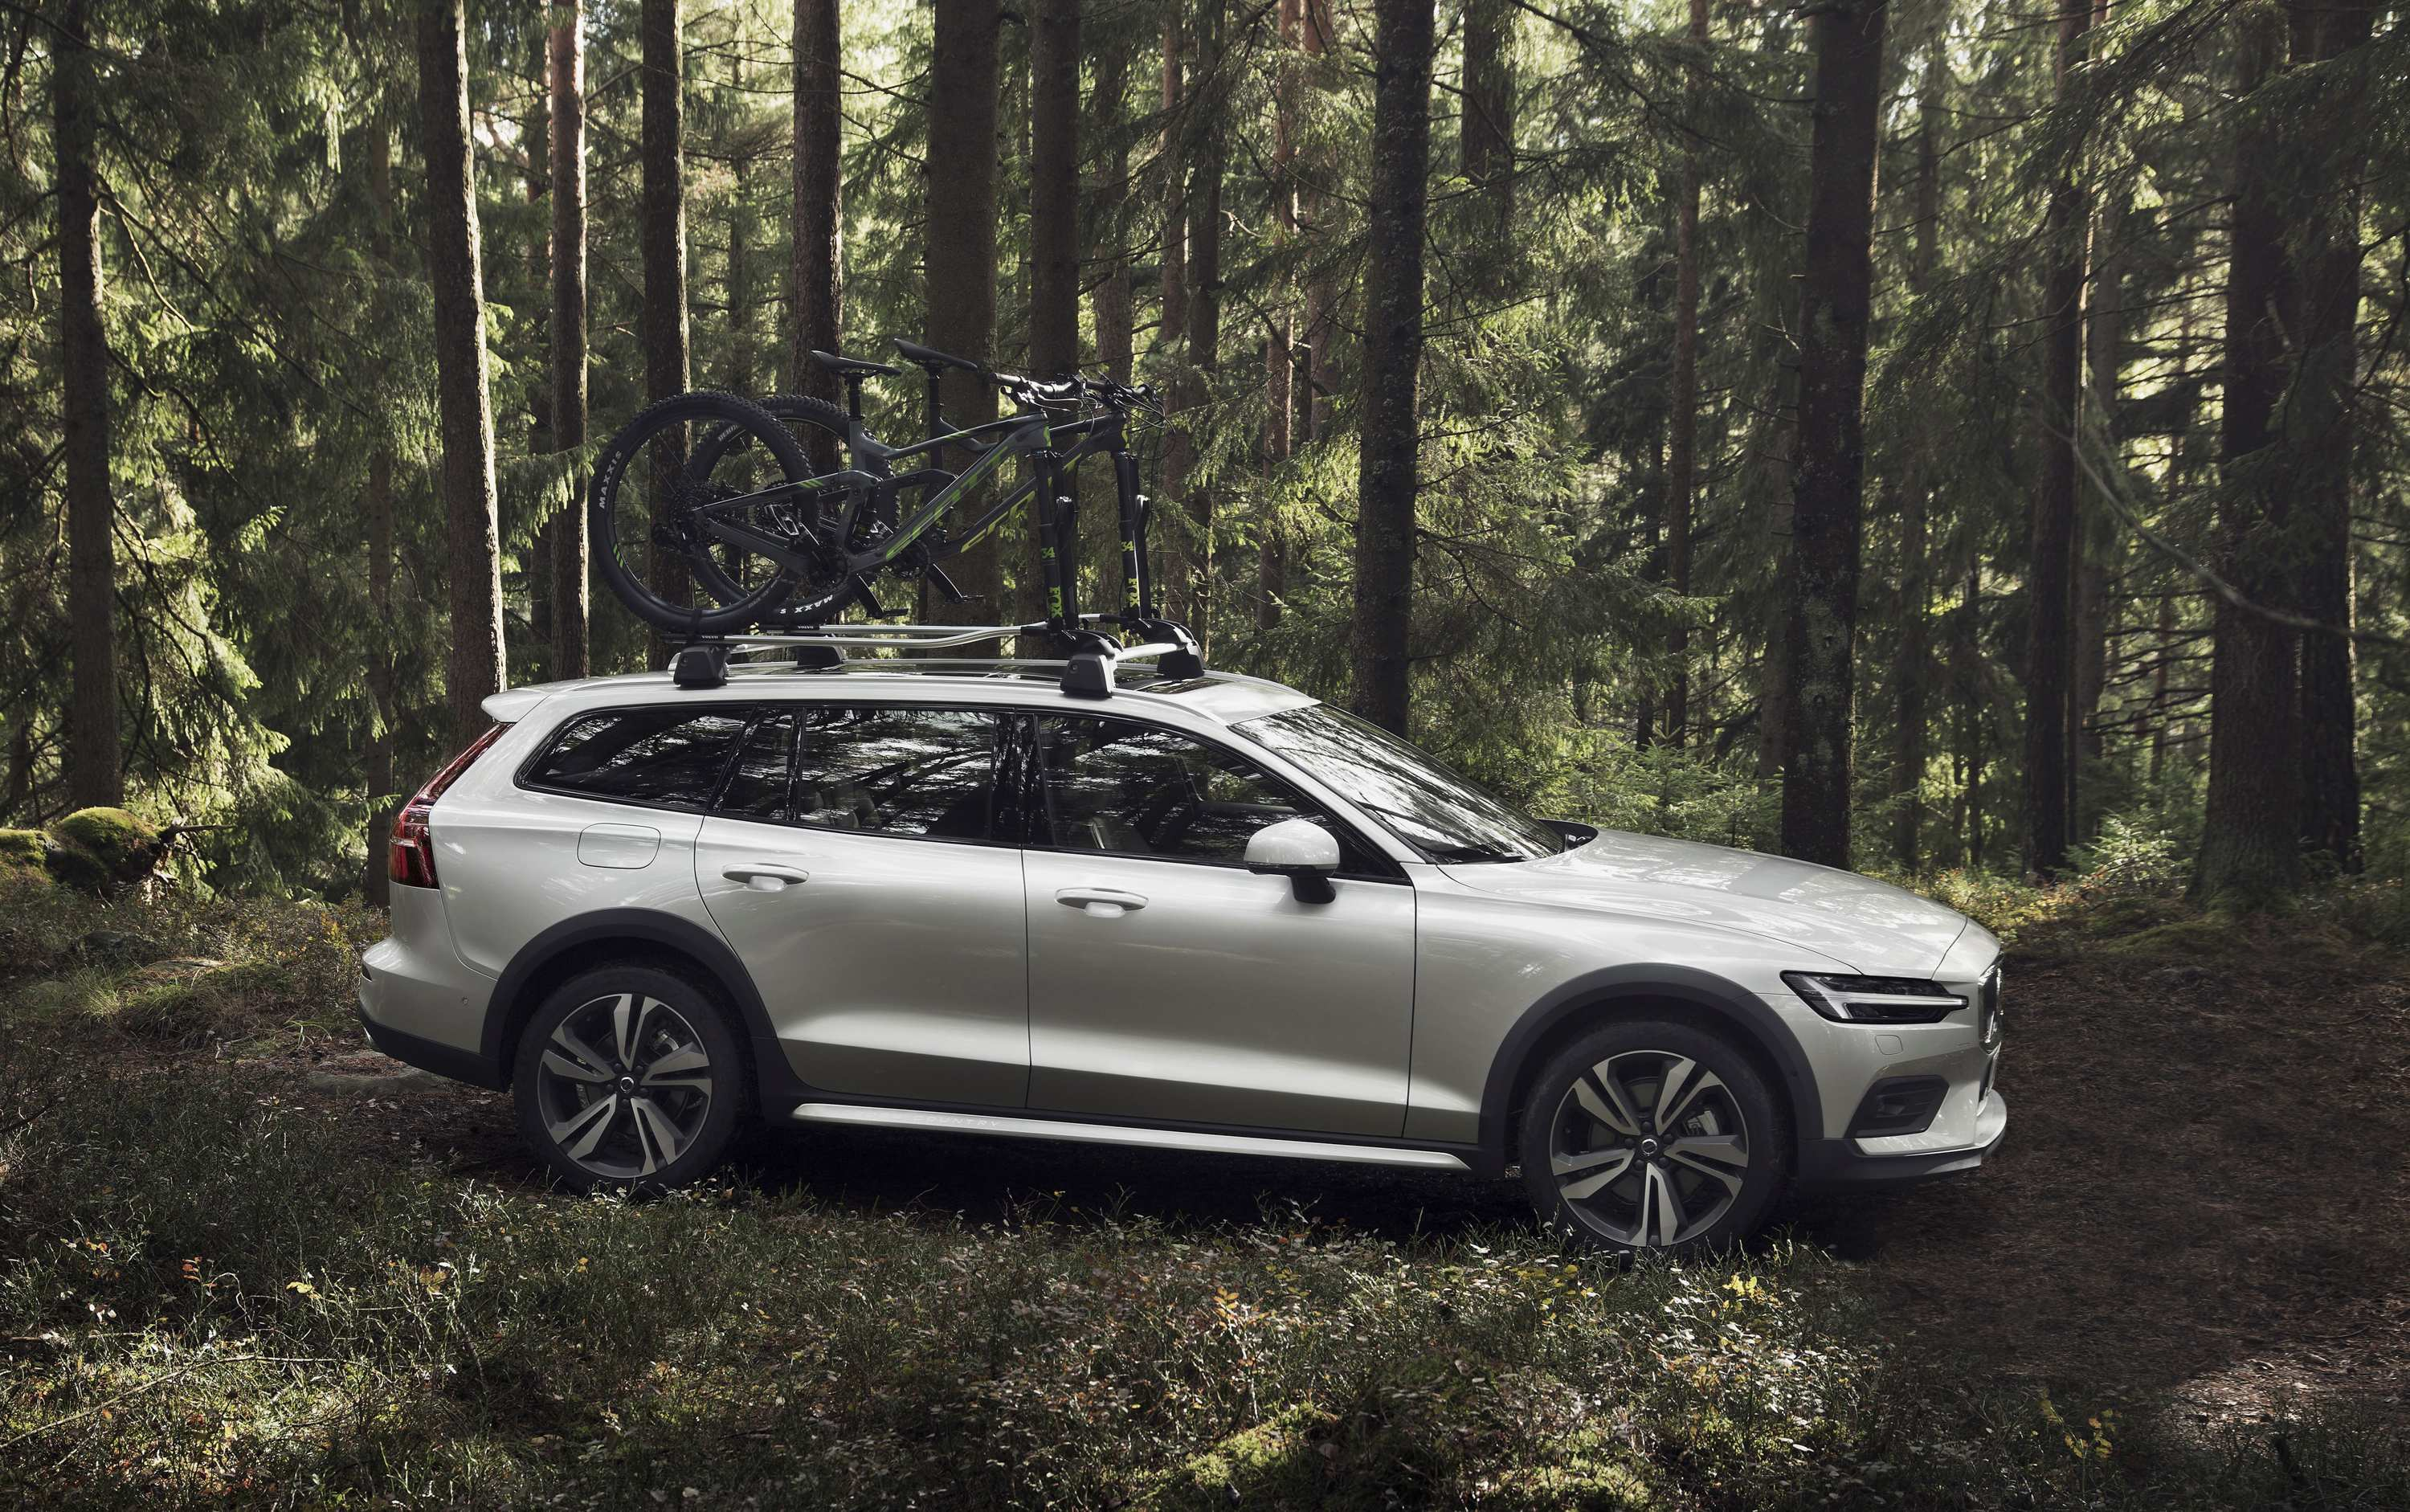 17 The New Volvo V60 2019 Ground Clearance New Engine Exterior and Interior with New Volvo V60 2019 Ground Clearance New Engine